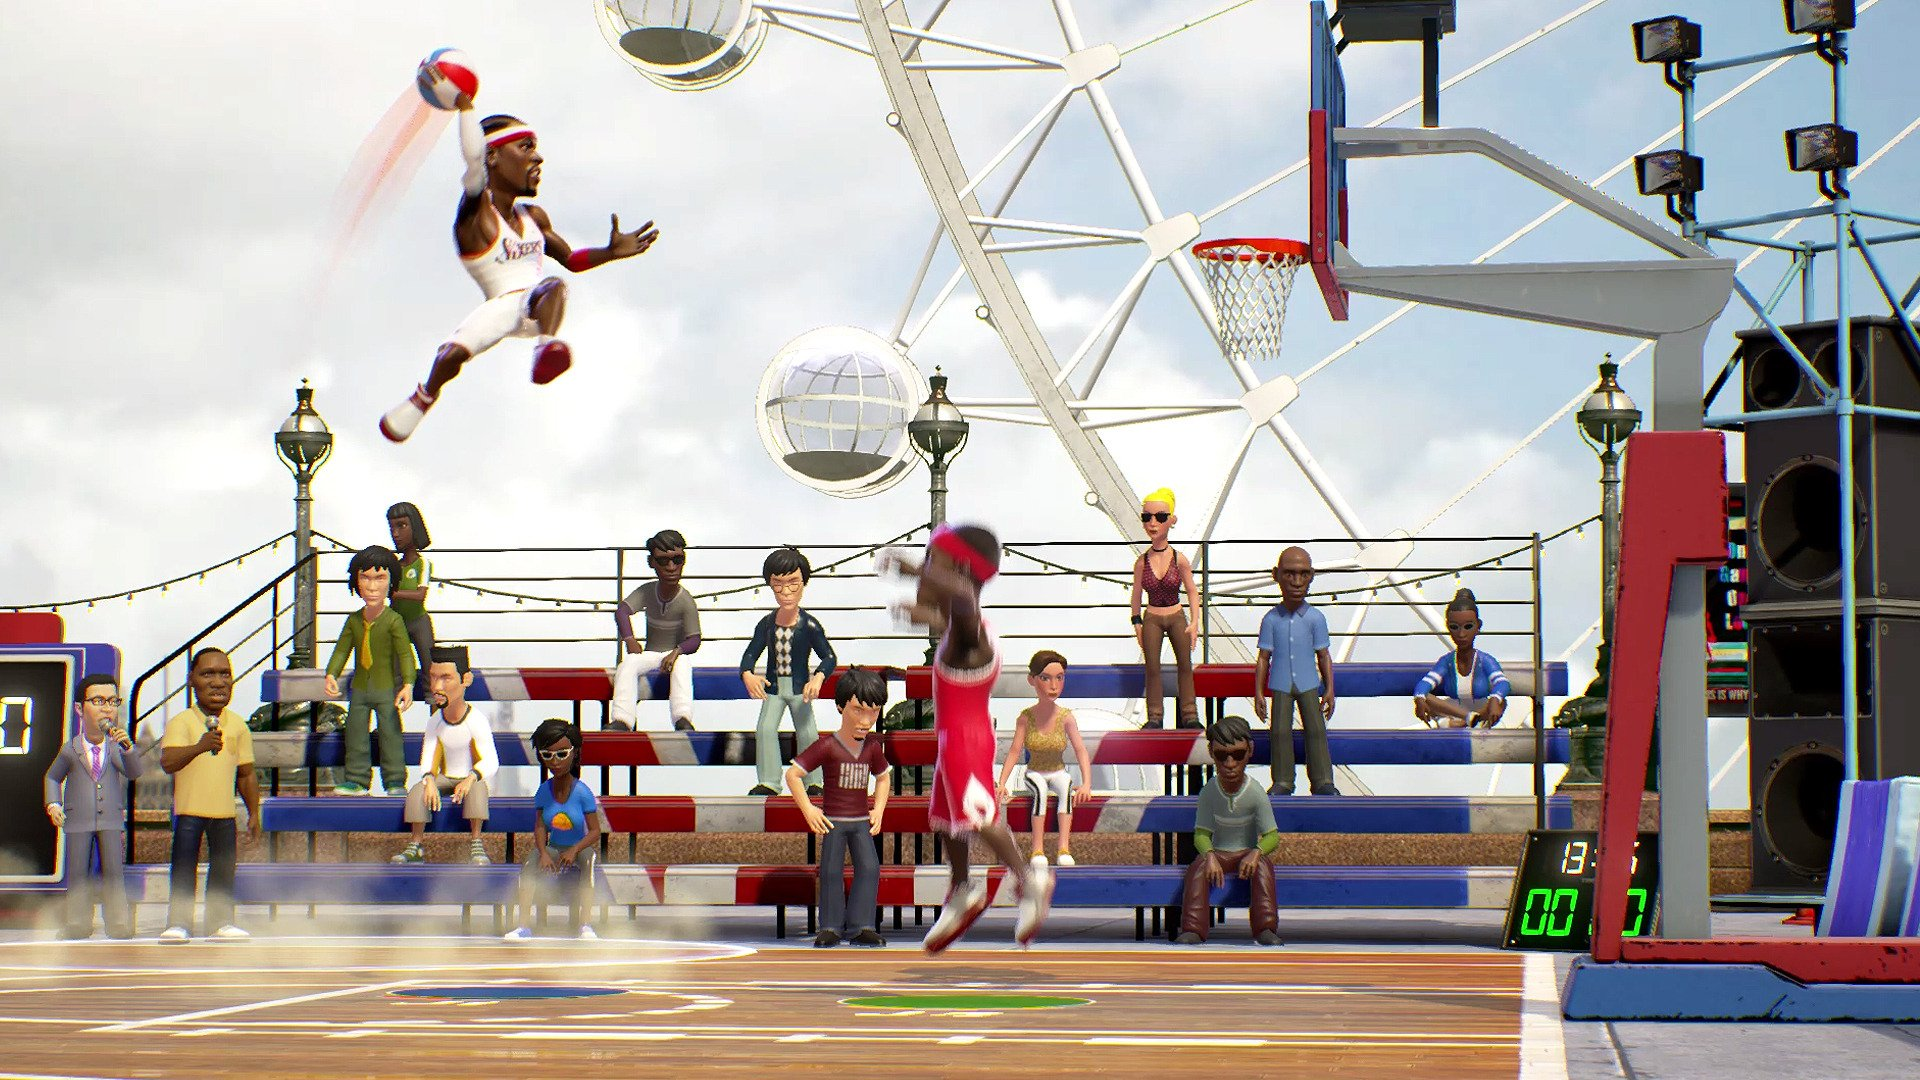 2 Nba Playgrounds Hd Wallpapers Background Images